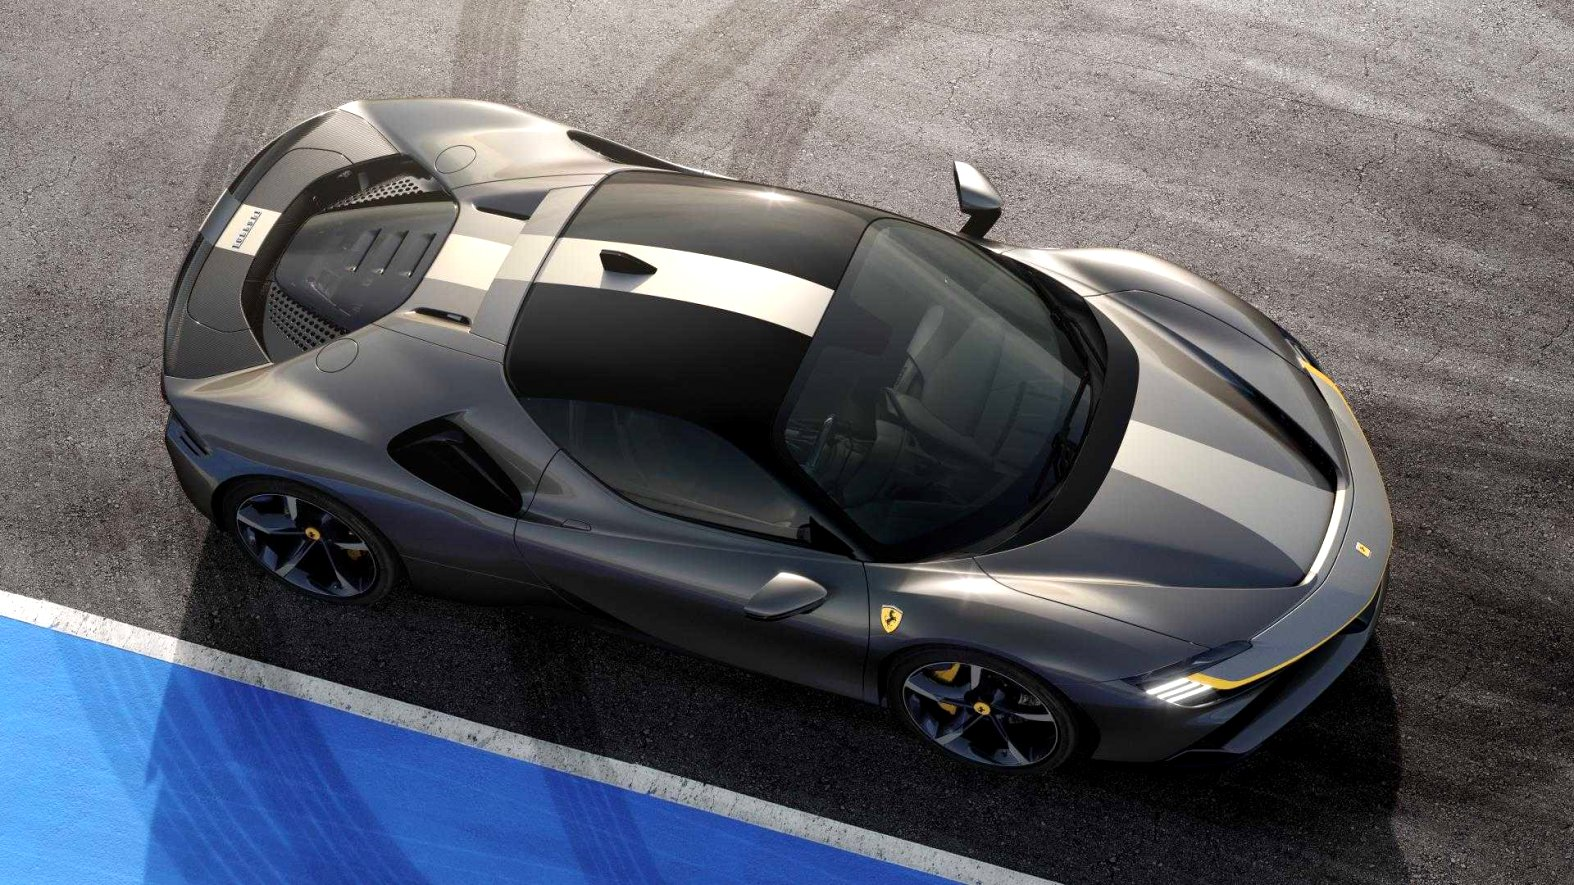 2020 ferrari new Release Date and Concept